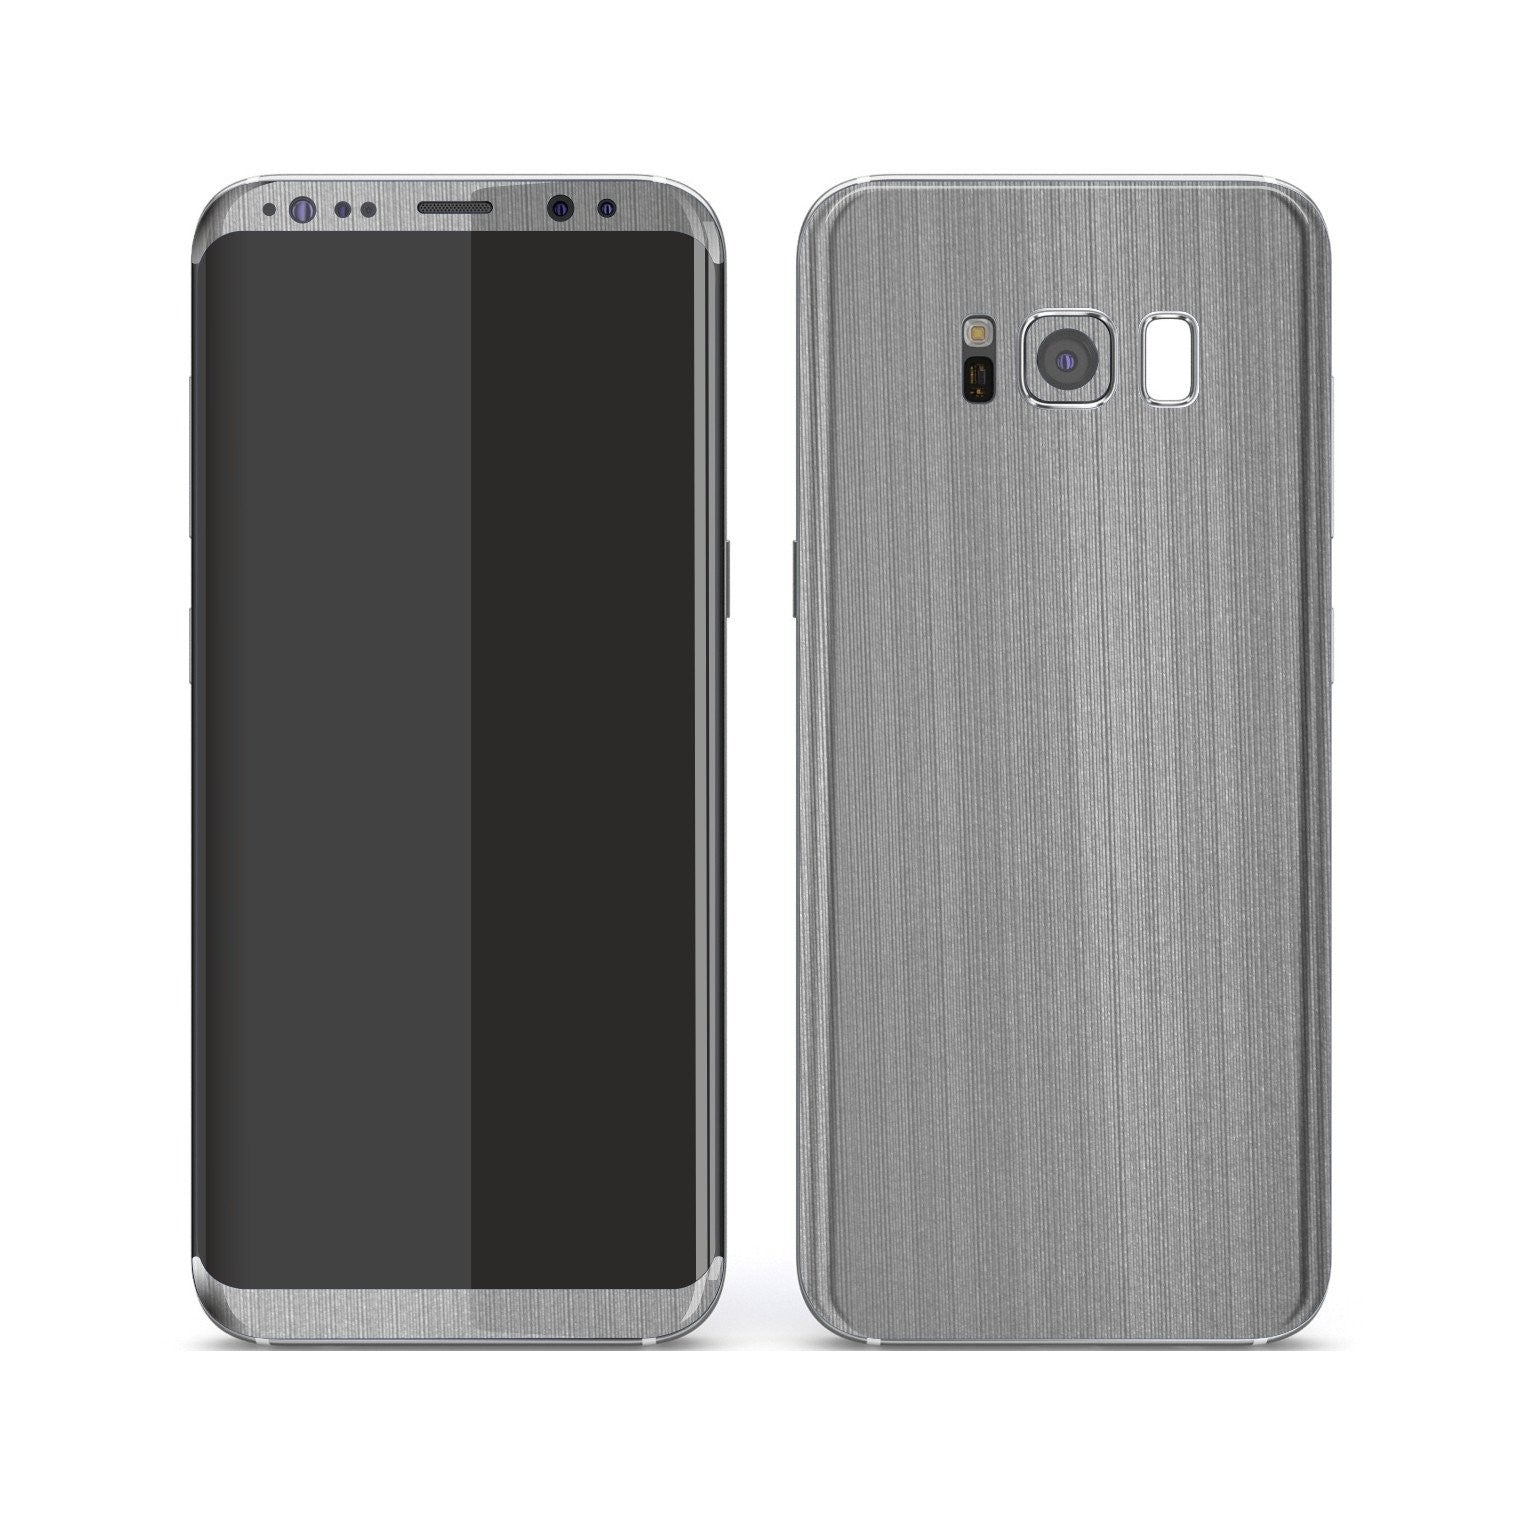 Samsung Galaxy S8+ Premium Brushed STEEL Metallic Metal Skin, Decal, Wrap, Protector, Cover by EasySkinz | EasySkinz.com